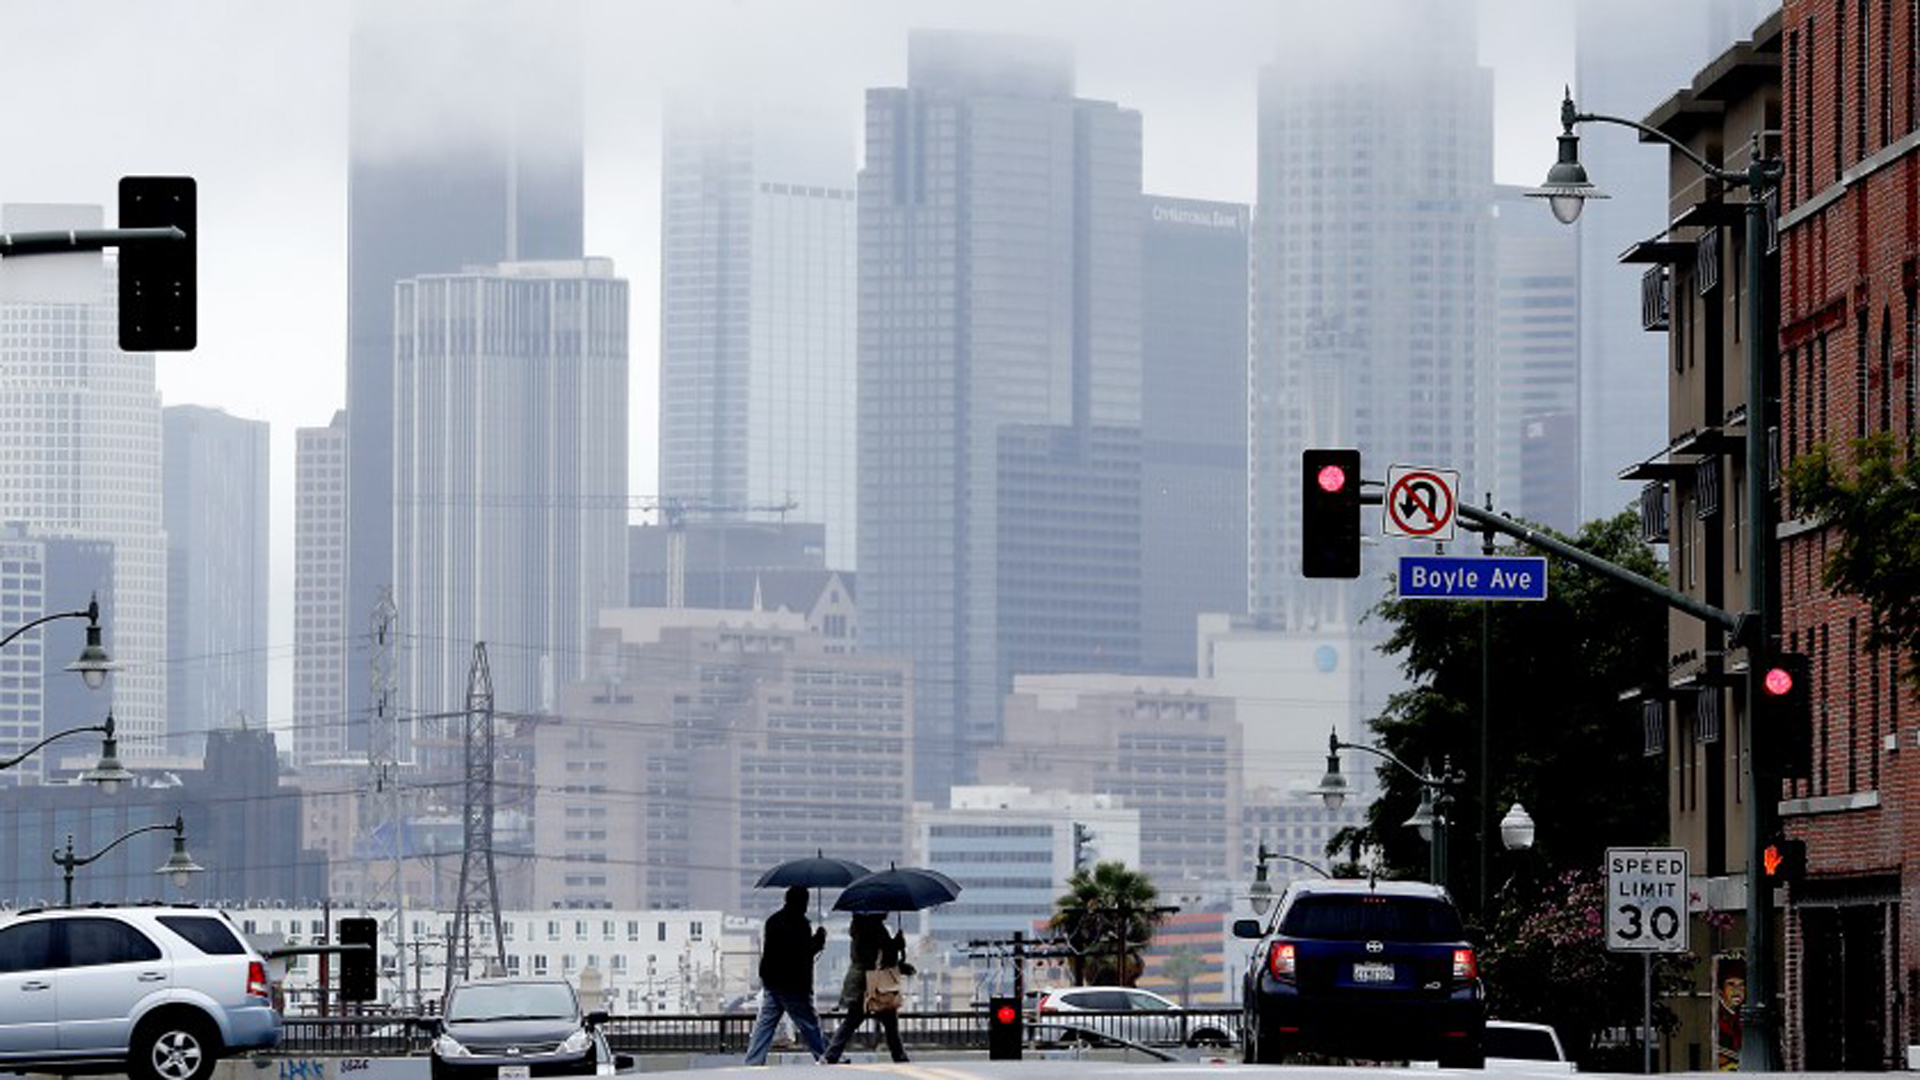 Pedestrians cross First Street in Boyle Heights as clouds partially obscure the downtown L.A. skyline on March 6. The first rain of fall made for a drizzly morning Sept. 26 in Los Angeles.(Credit: Luis Sinco / Los Angeles Times)